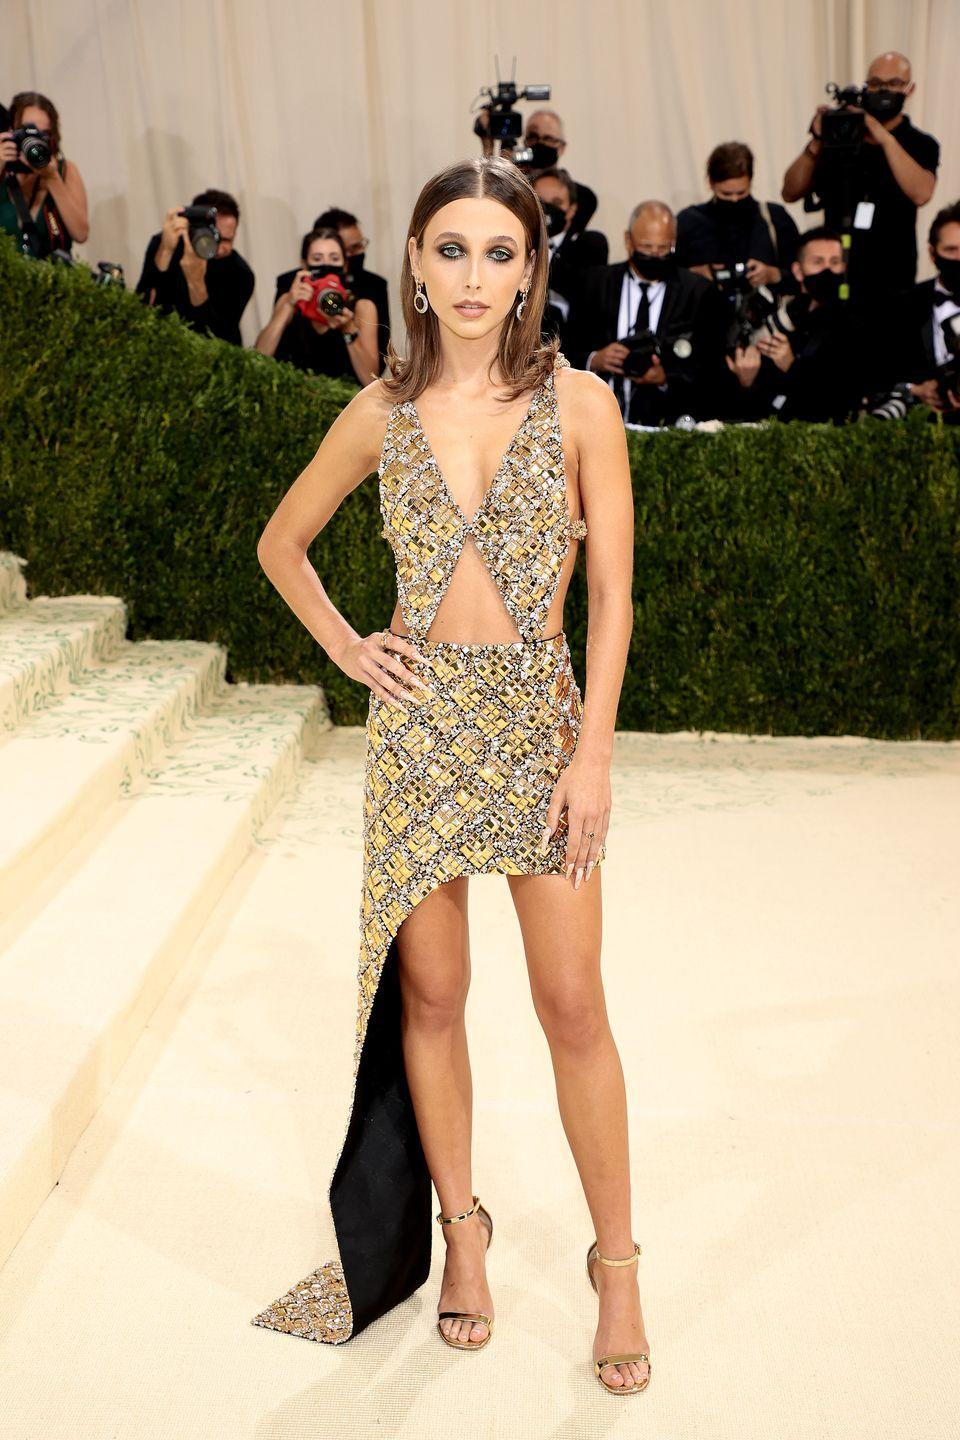 <p>Internet star Emma Chamberlain wore a glamorous Louis Vuitton cutout high-low gown embellished with yellow jewels, and paired the piece with circular white jewel earrings. She wore her hair in a sleek straight hairstyle to keep all eyes on the stunning gown.</p>